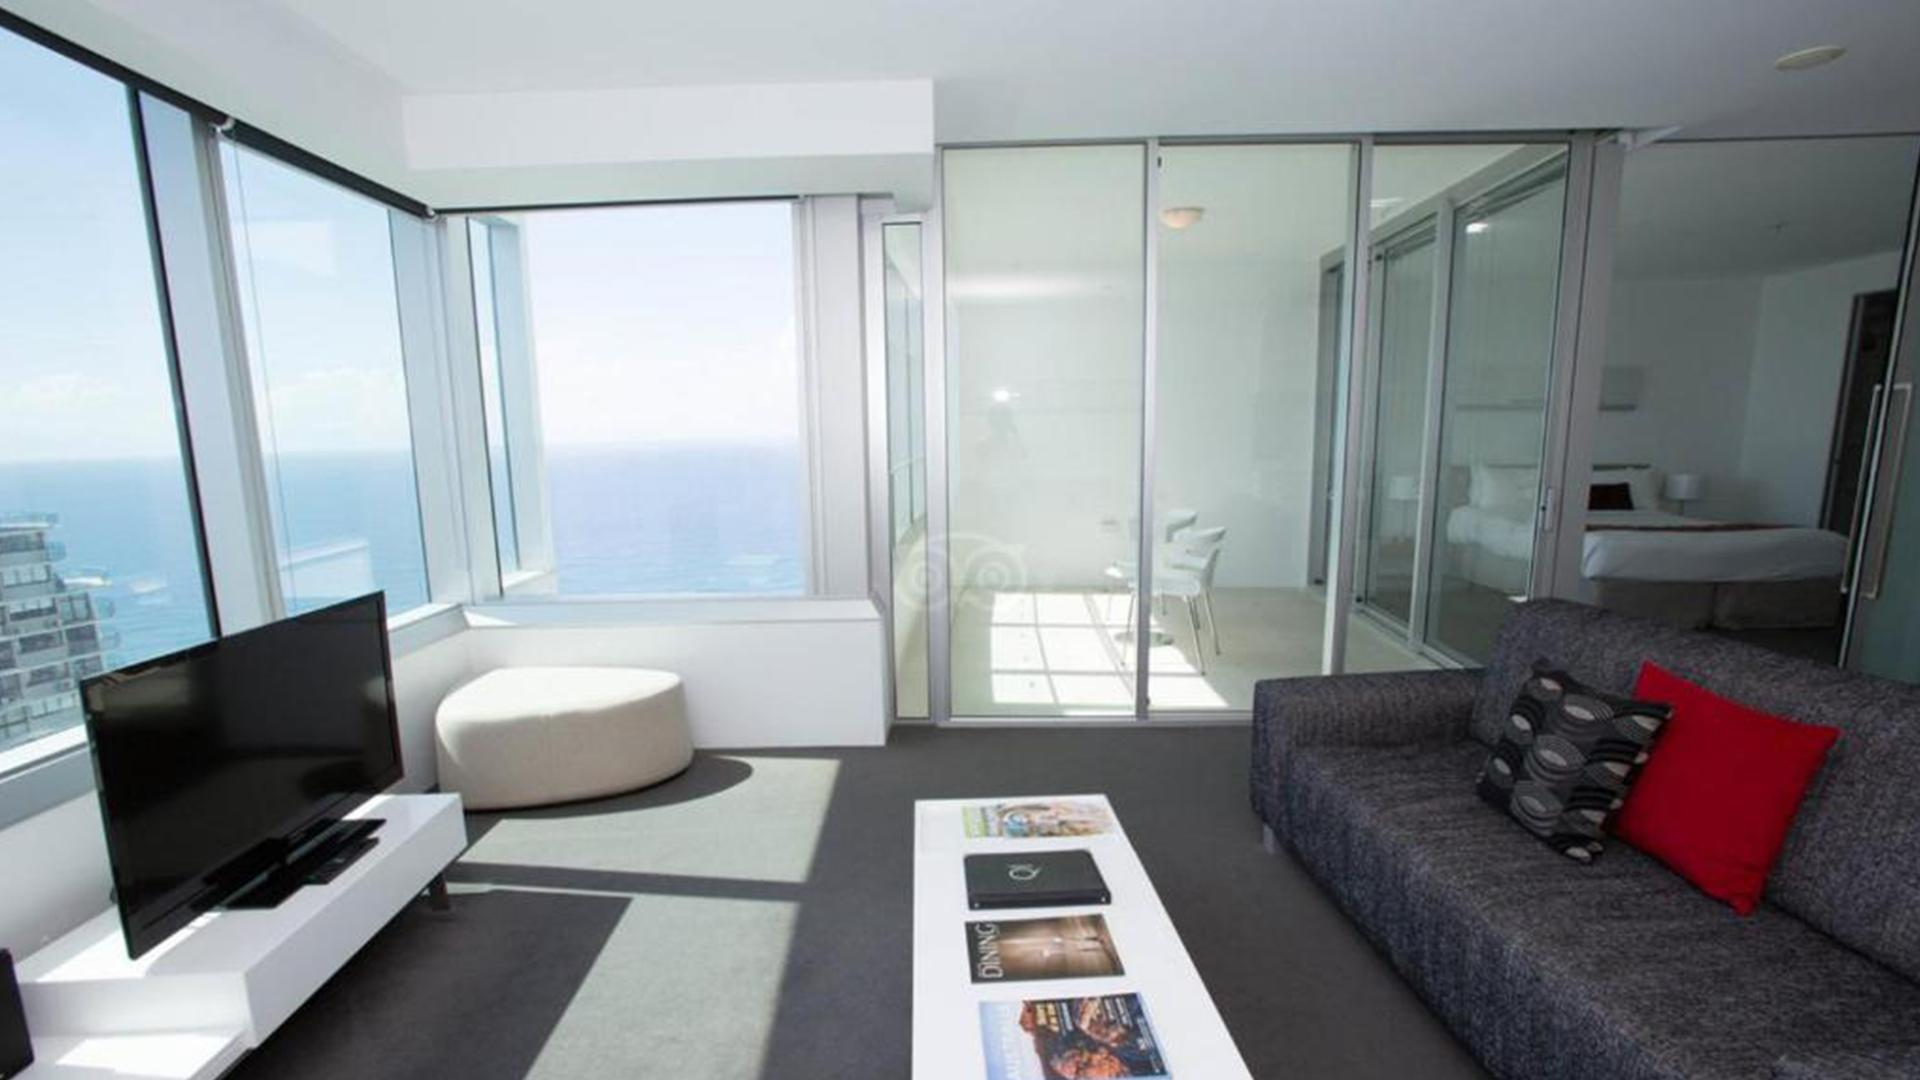 One-Bedroom Ocean-View Apartment  image 1 at Q1 Resort & Spa by City of Gold Coast, Queensland, Australia